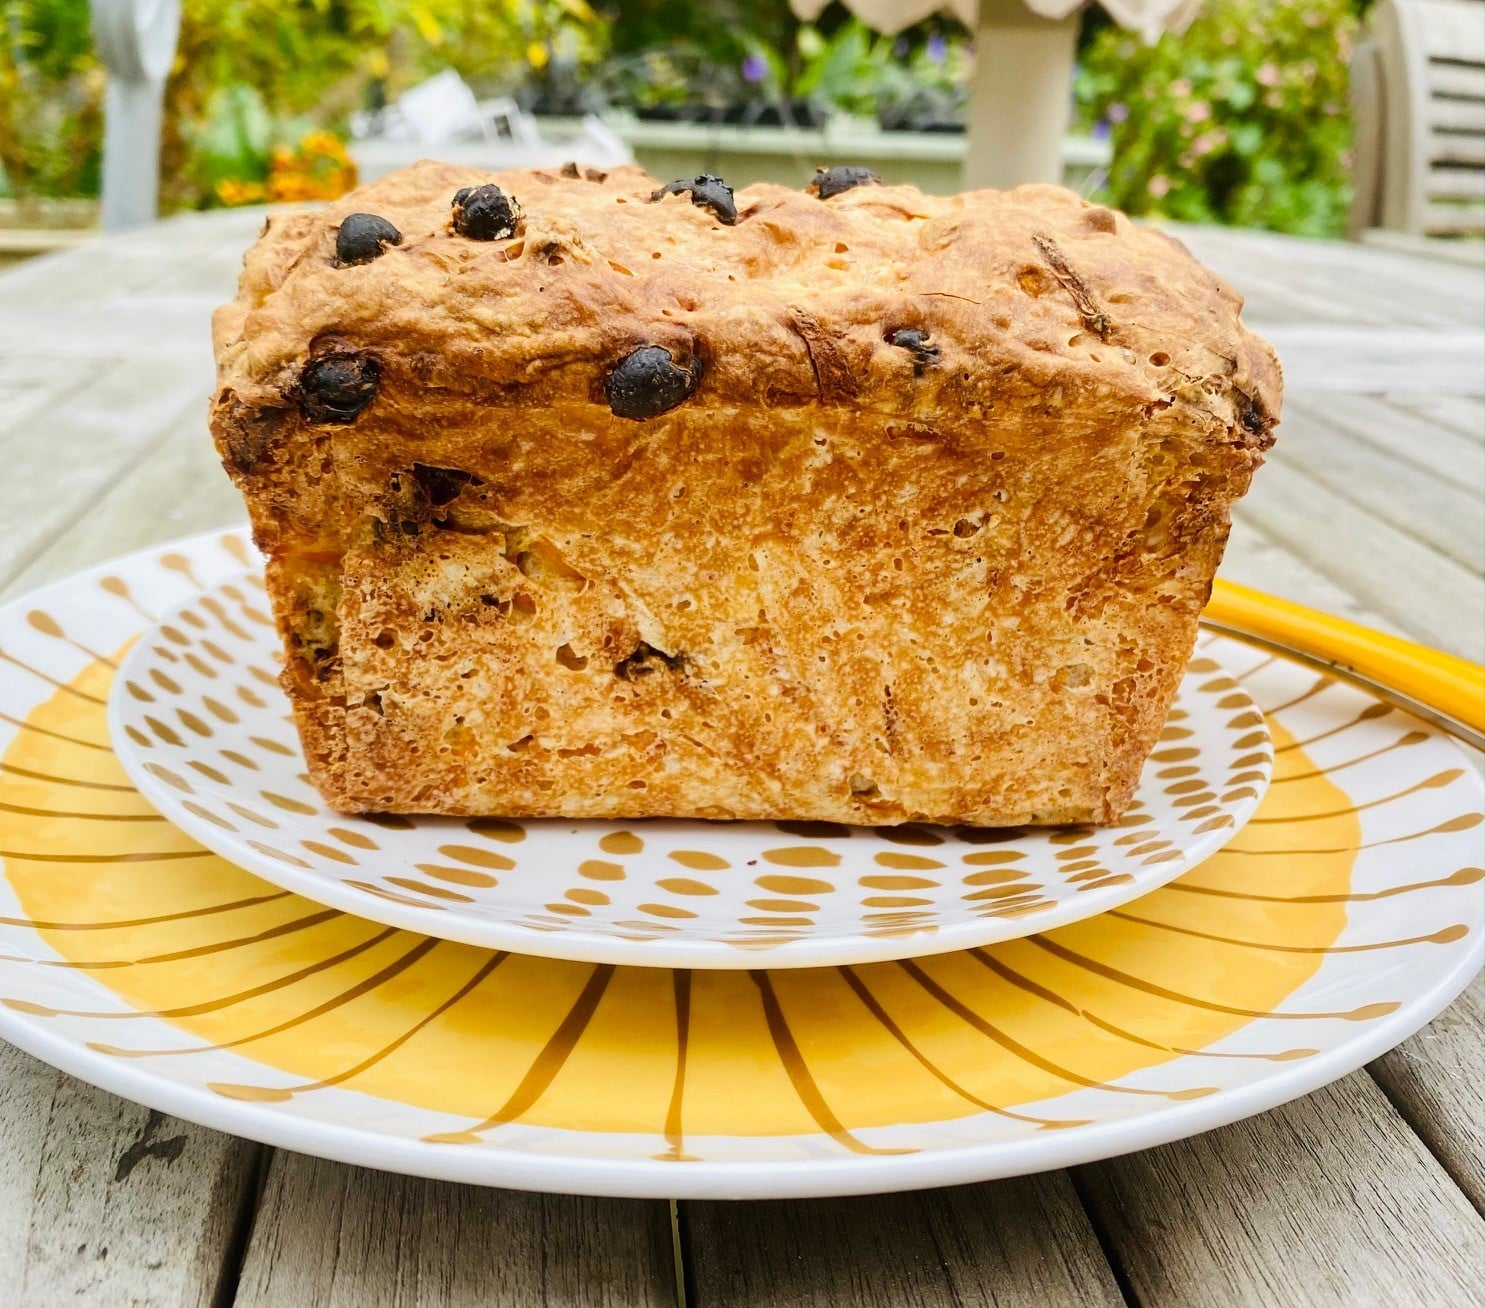 carrot and sultana loaf - whole loaf, baked - side view